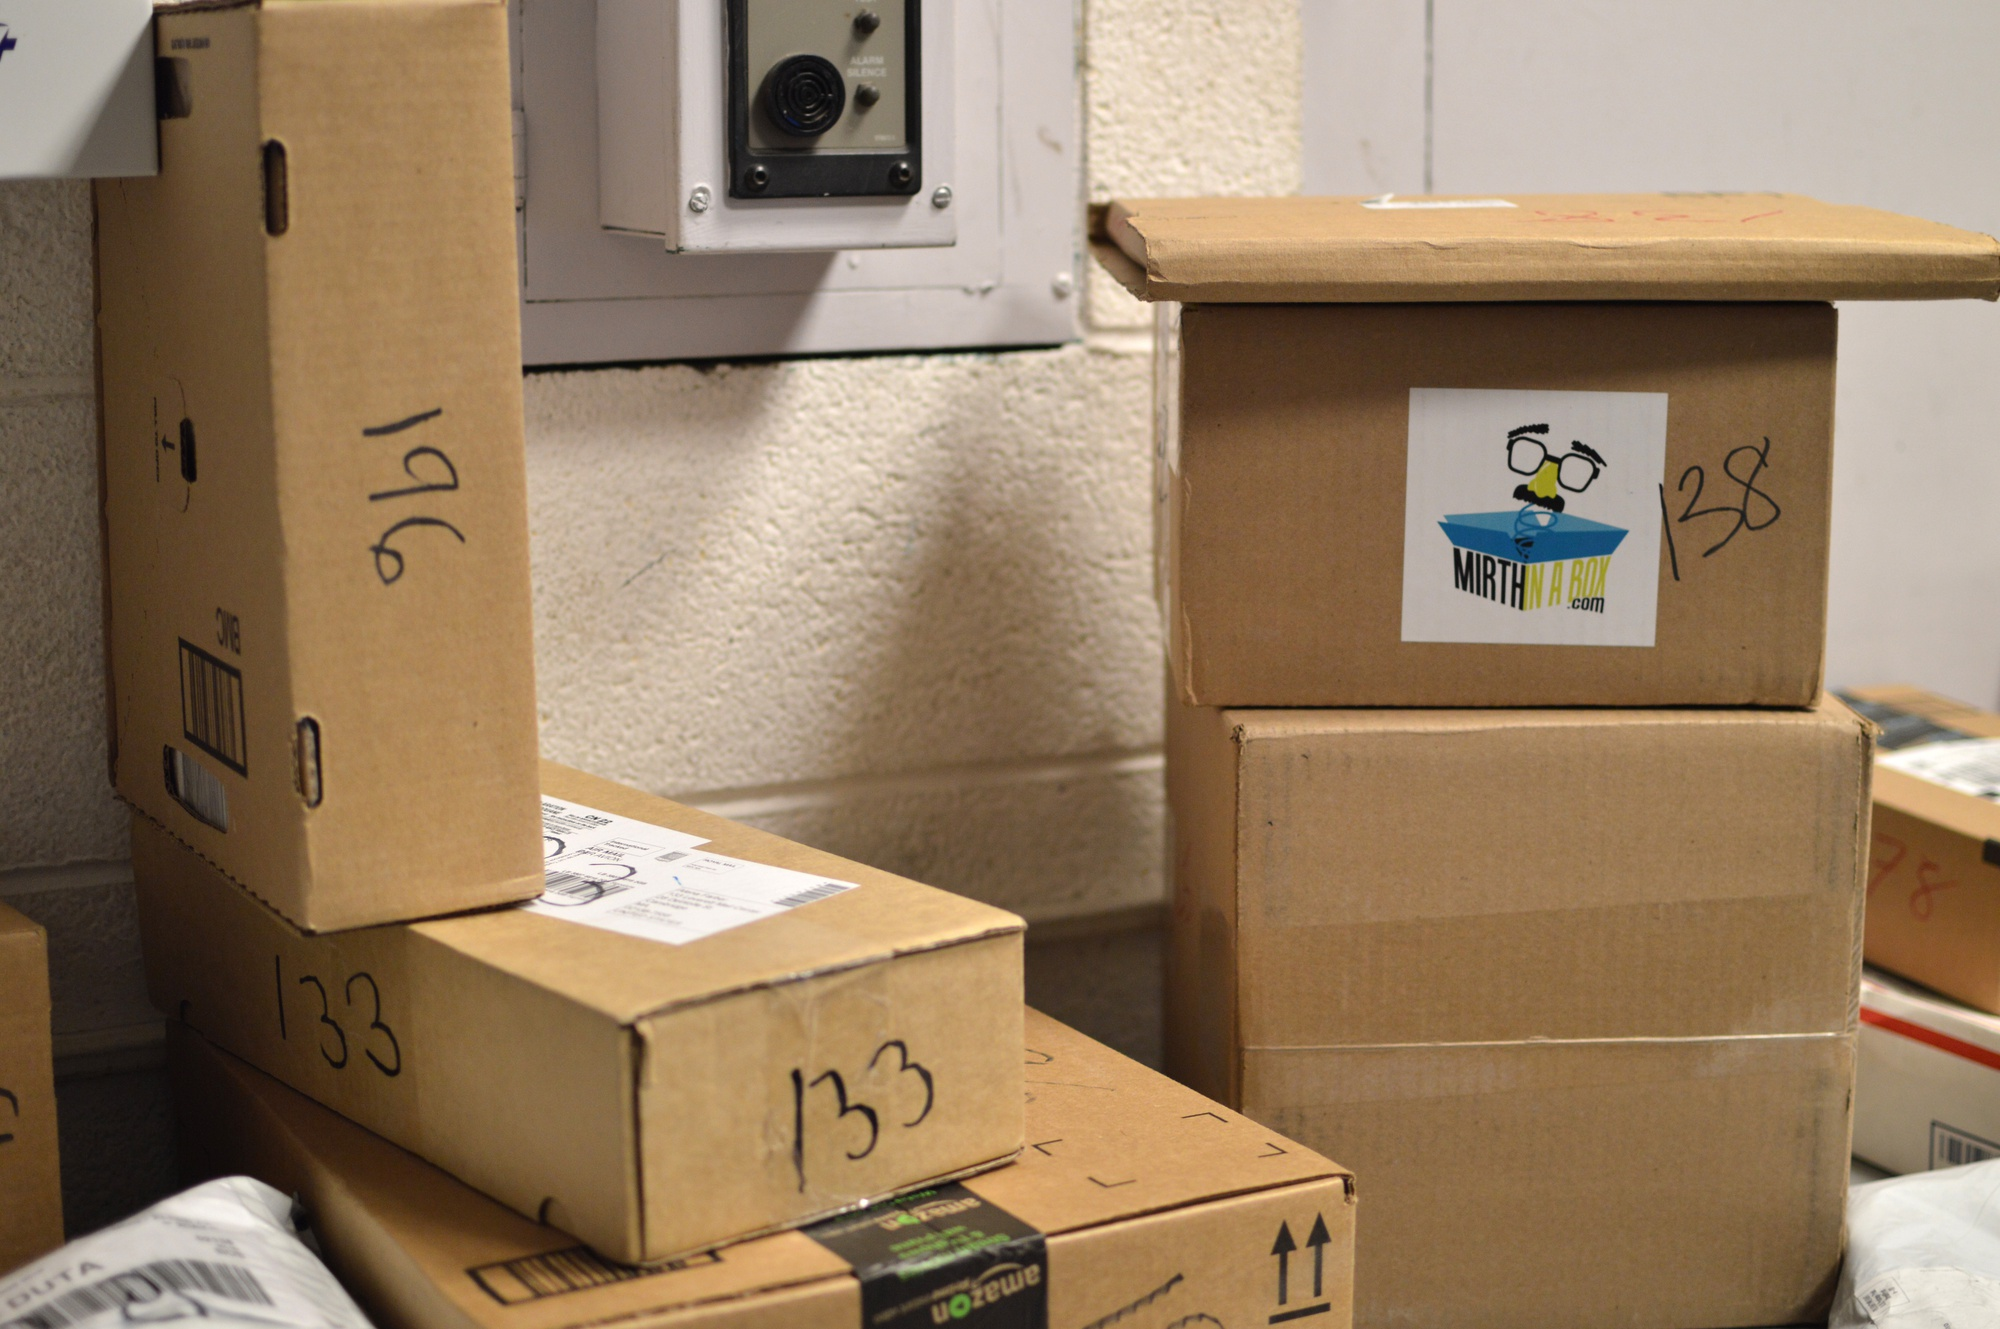 Reports of package theft have increased recently, especially in graduate apartment-style housing, according Harvard University Police Department spokesperson Steven G. Catalano.